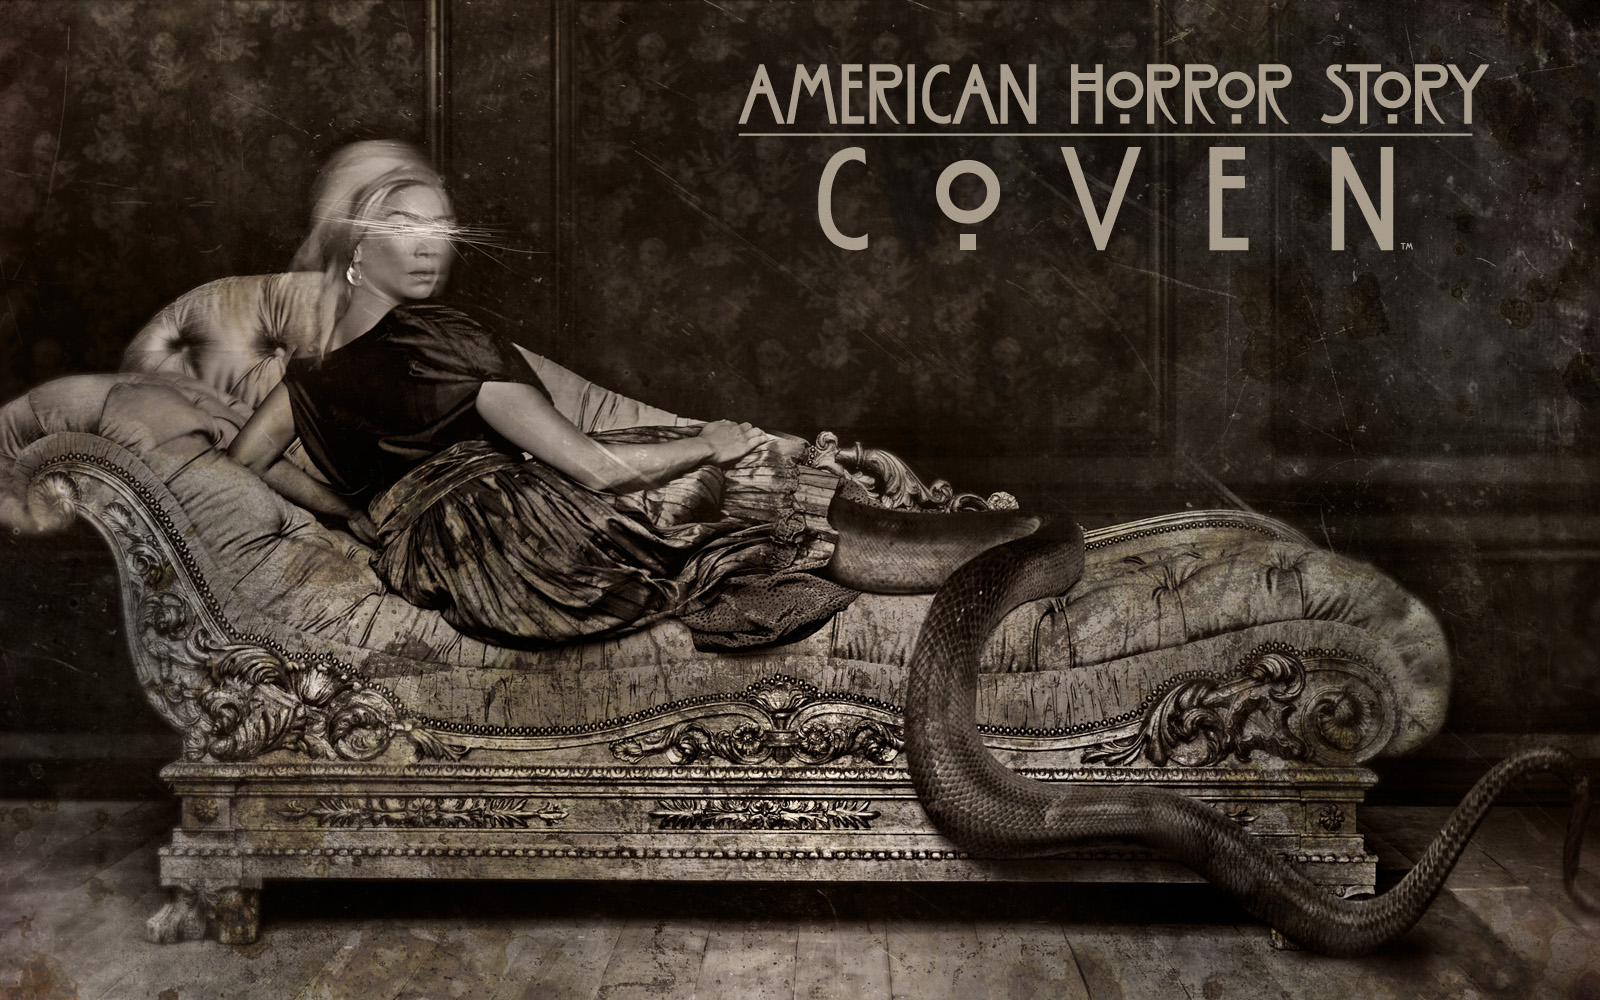 American horror story creepy b w dark horror demon dark wallpaper 1600x1000 166799 wallpaperup - American horror story wallpaper ...